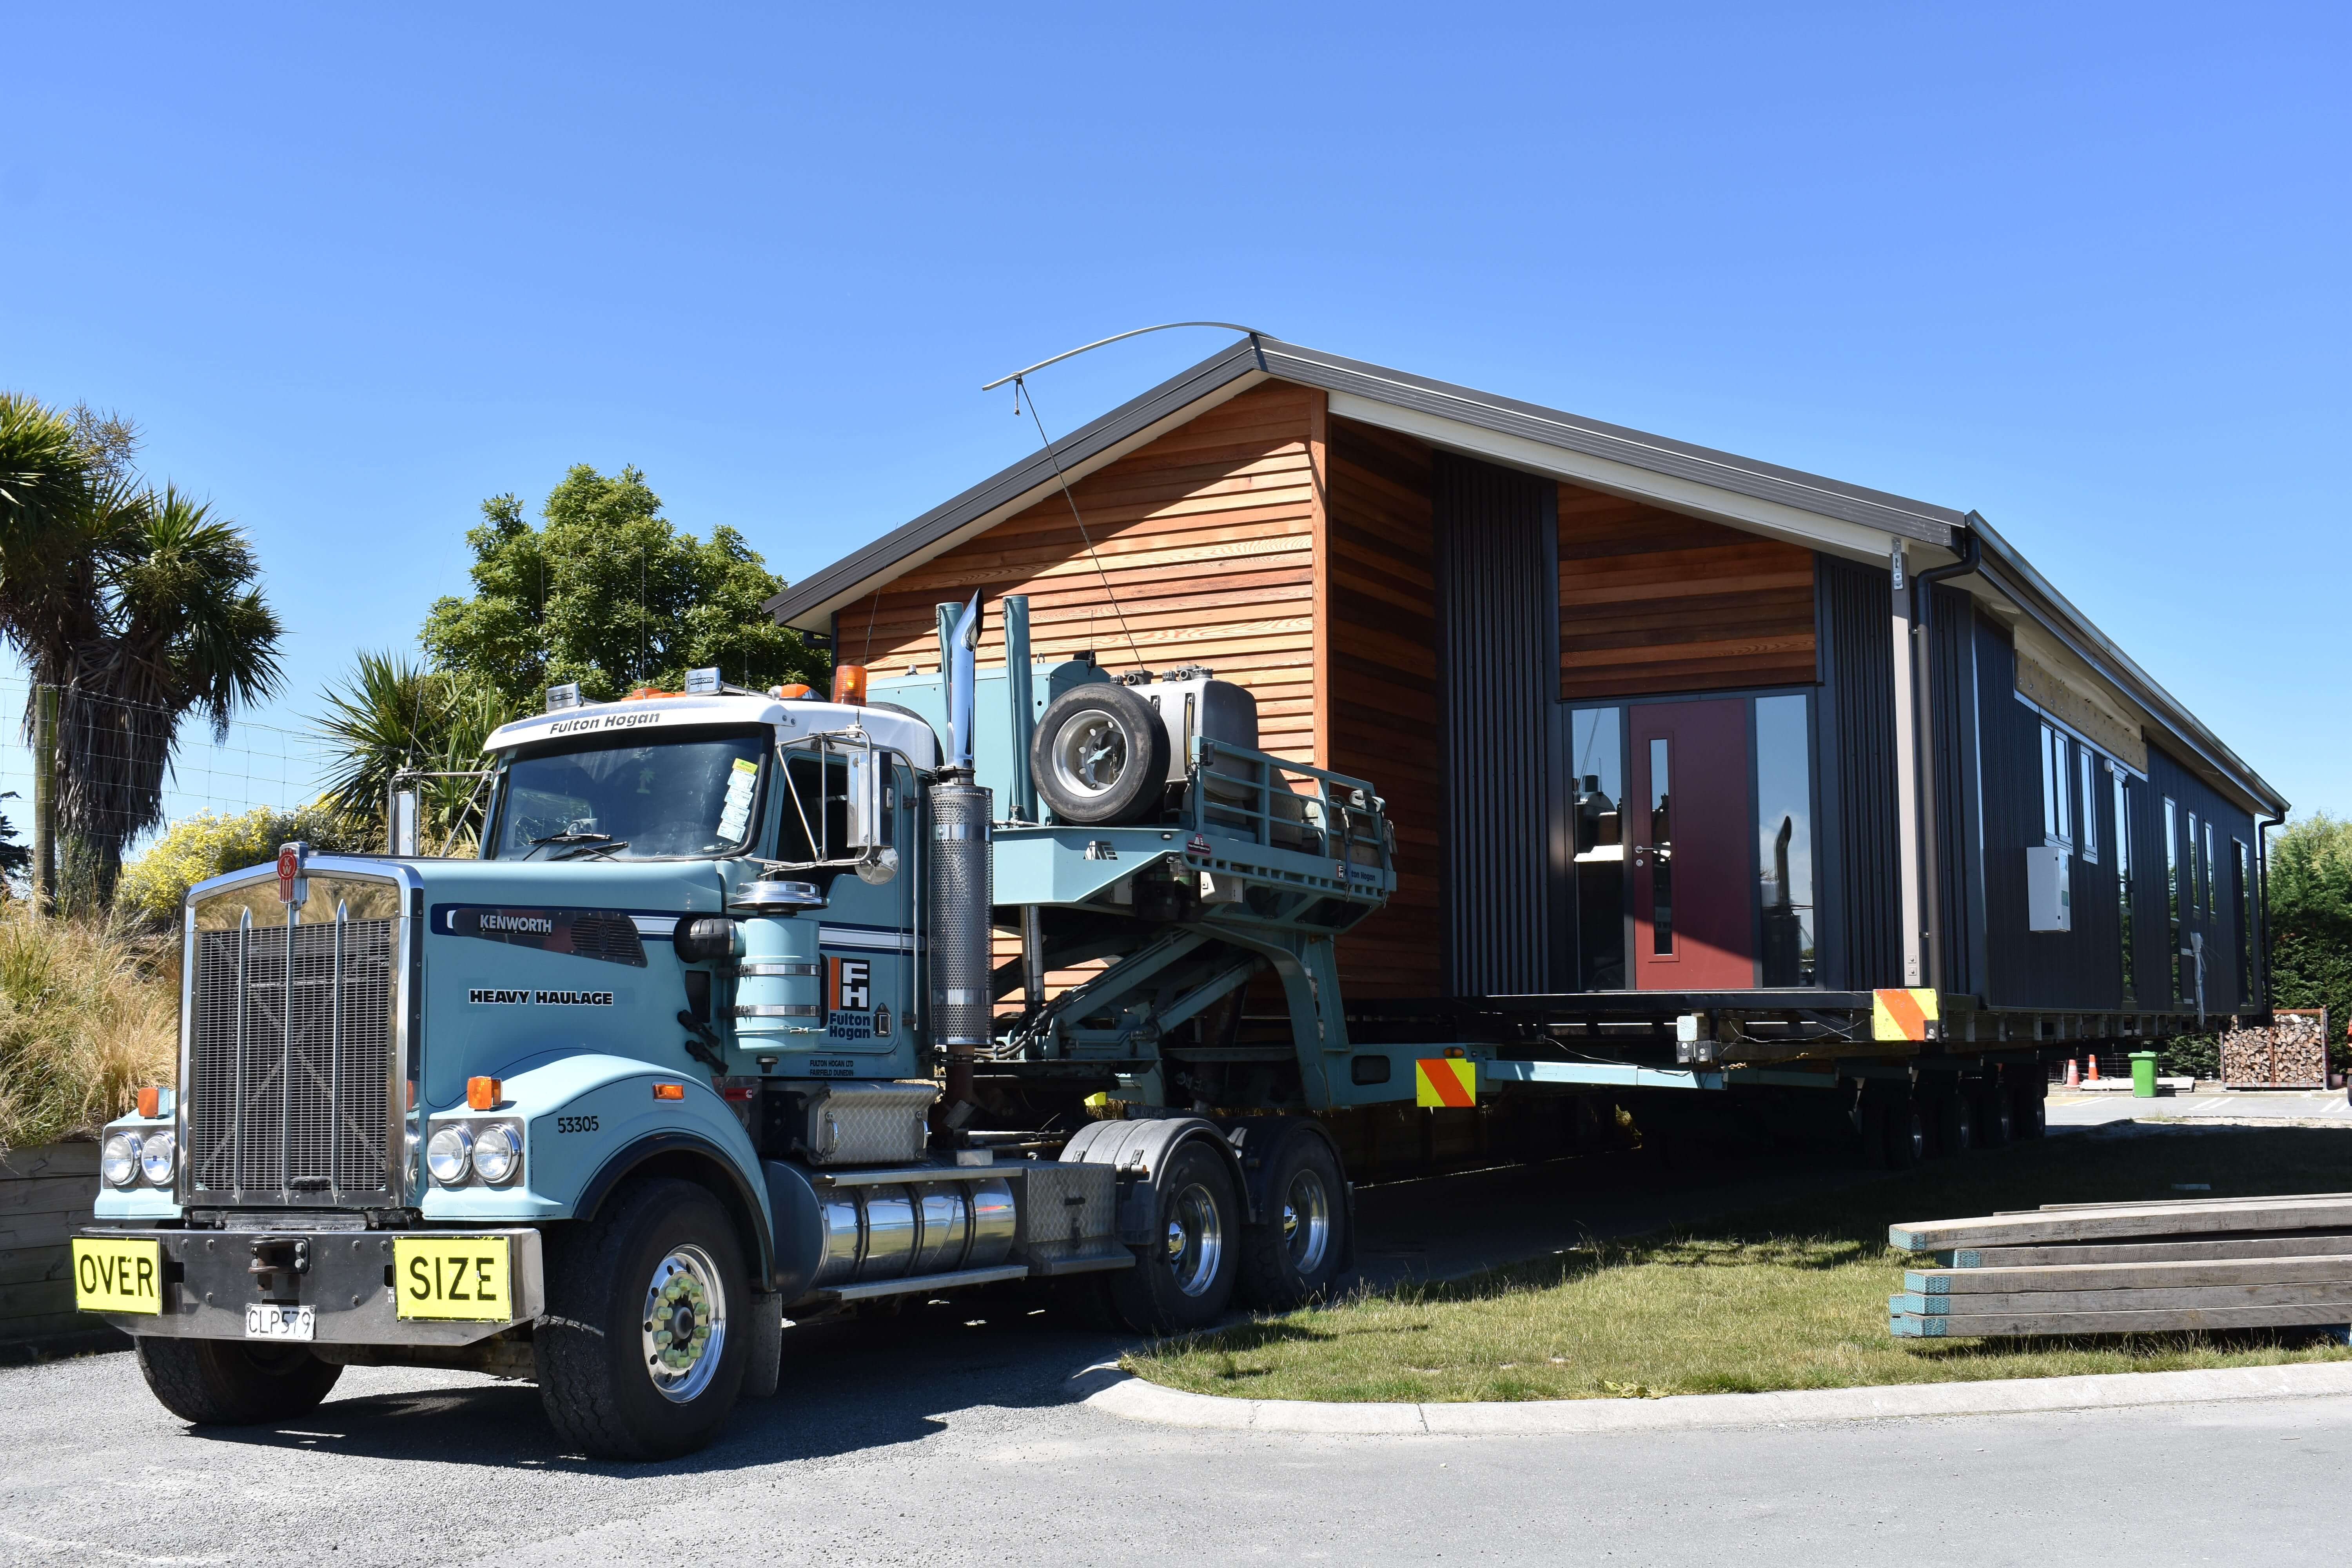 A prefab second dwelling being delivered